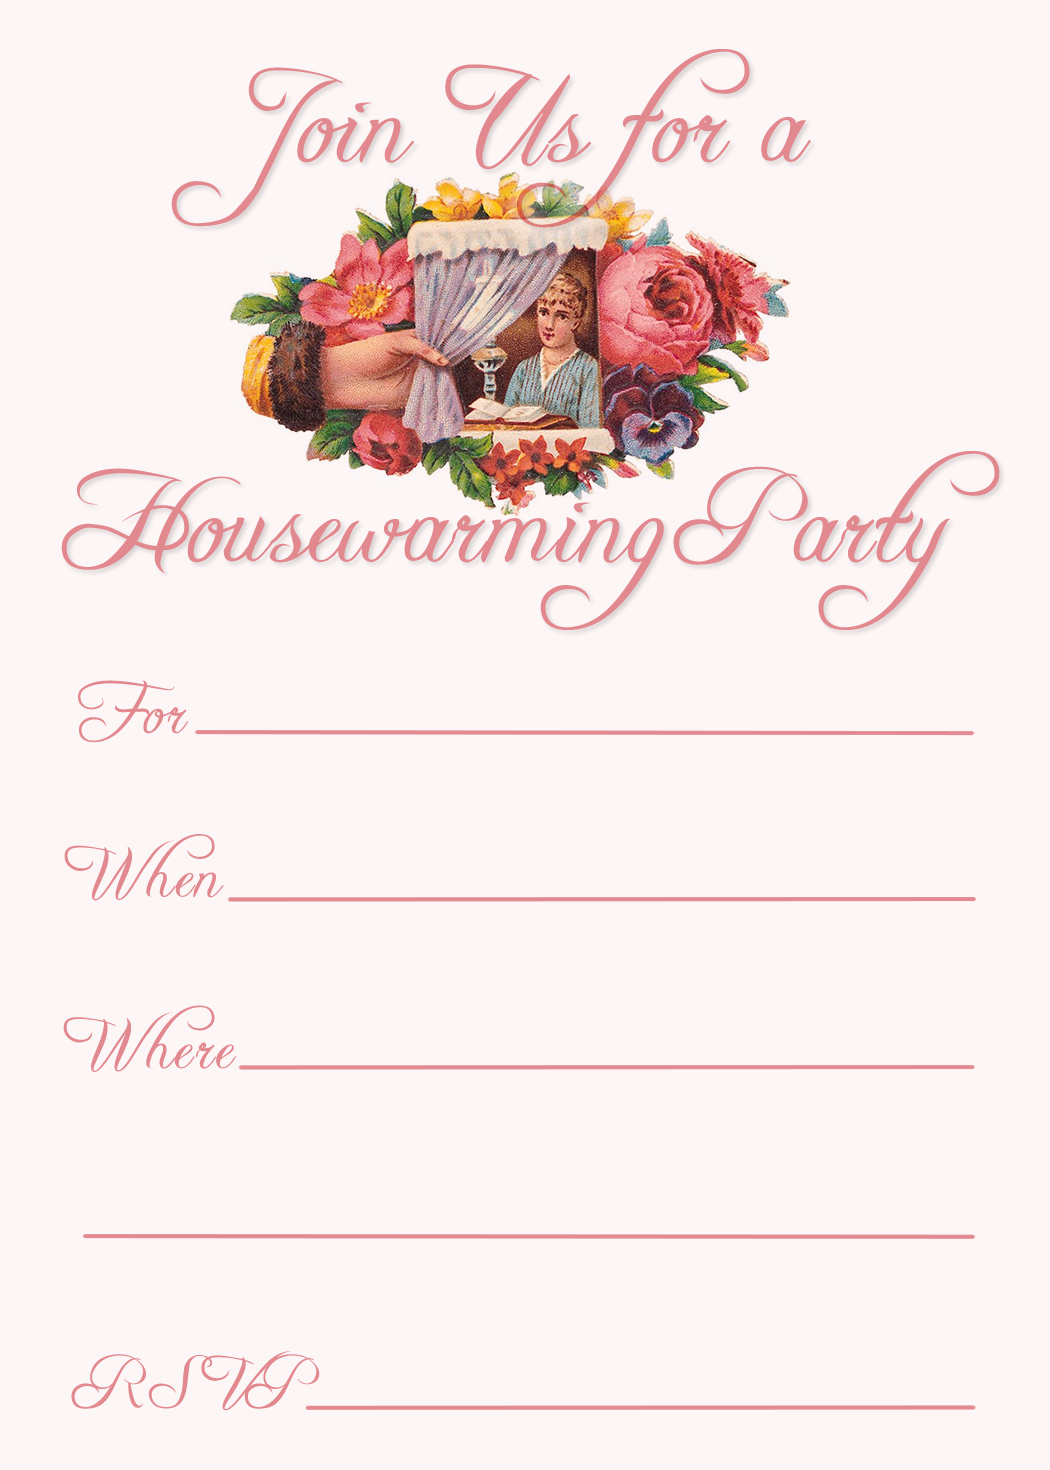 Free Printable Housewarming Party Invitations | Invitation Cards - Free Printable Housewarming Invitations Cards